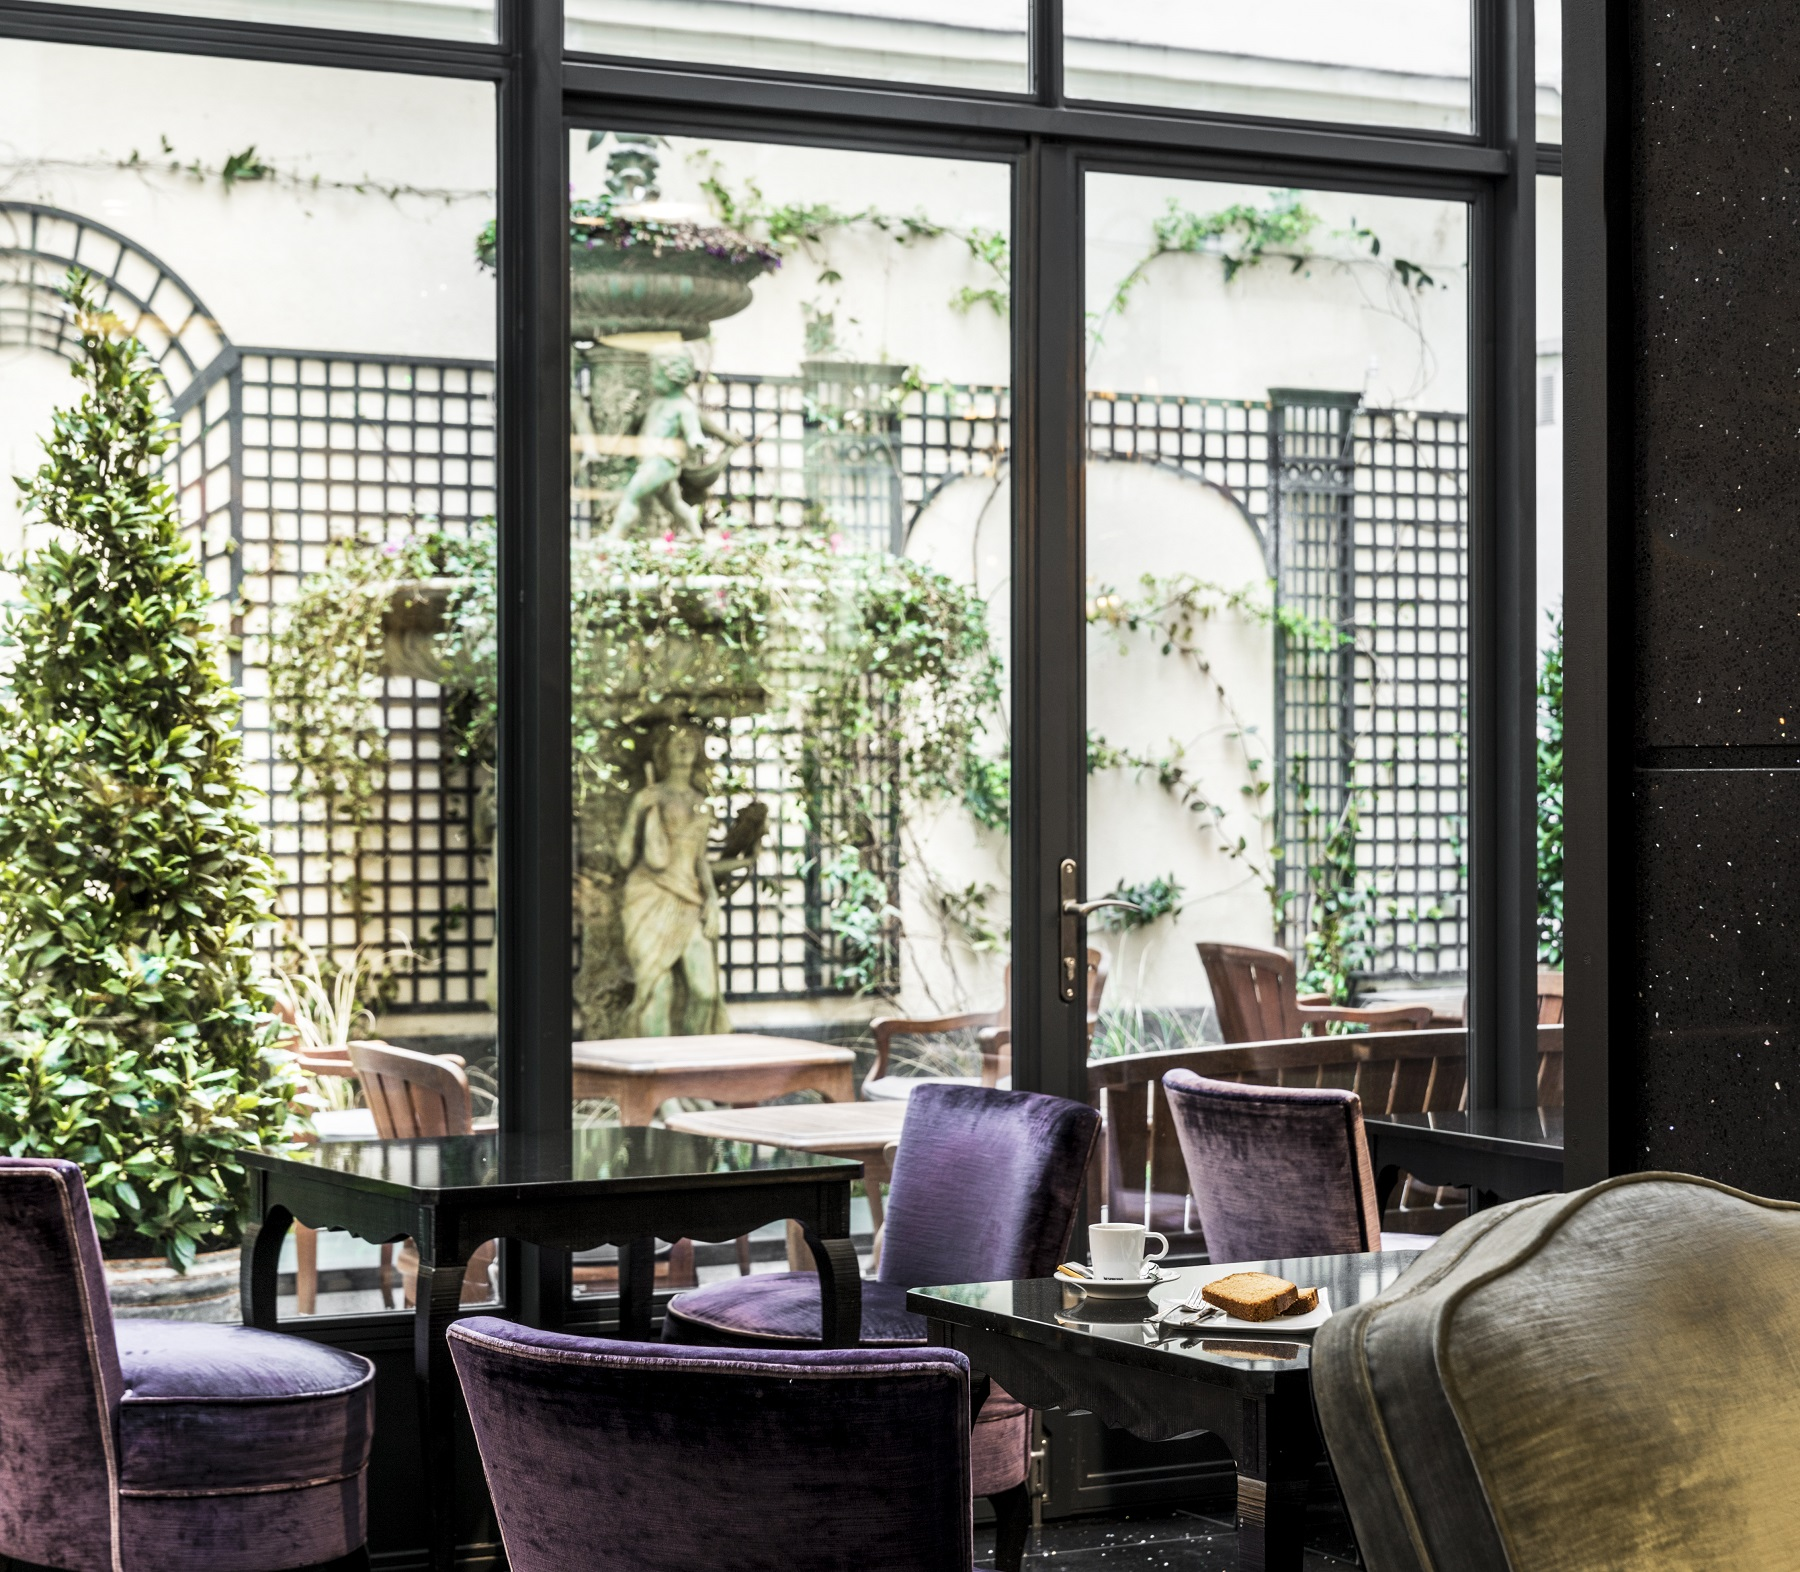 Maison Albar Hotels Le Diamond bar